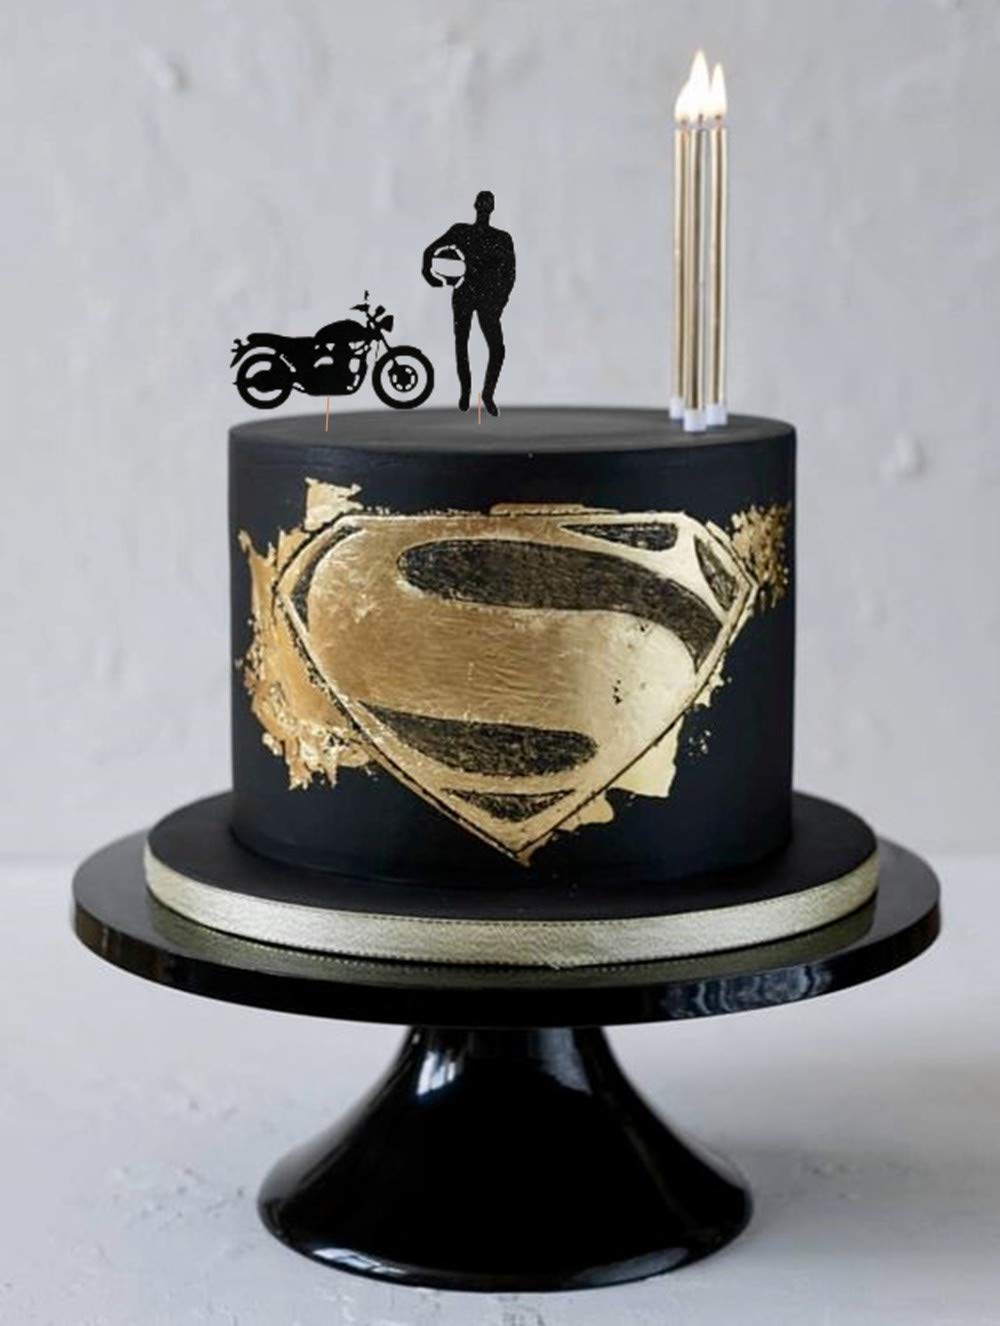 Superb Cooking Dining Set Of 2 Jevenis Acrylic Black Motorcycle Cake Personalised Birthday Cards Paralily Jamesorg